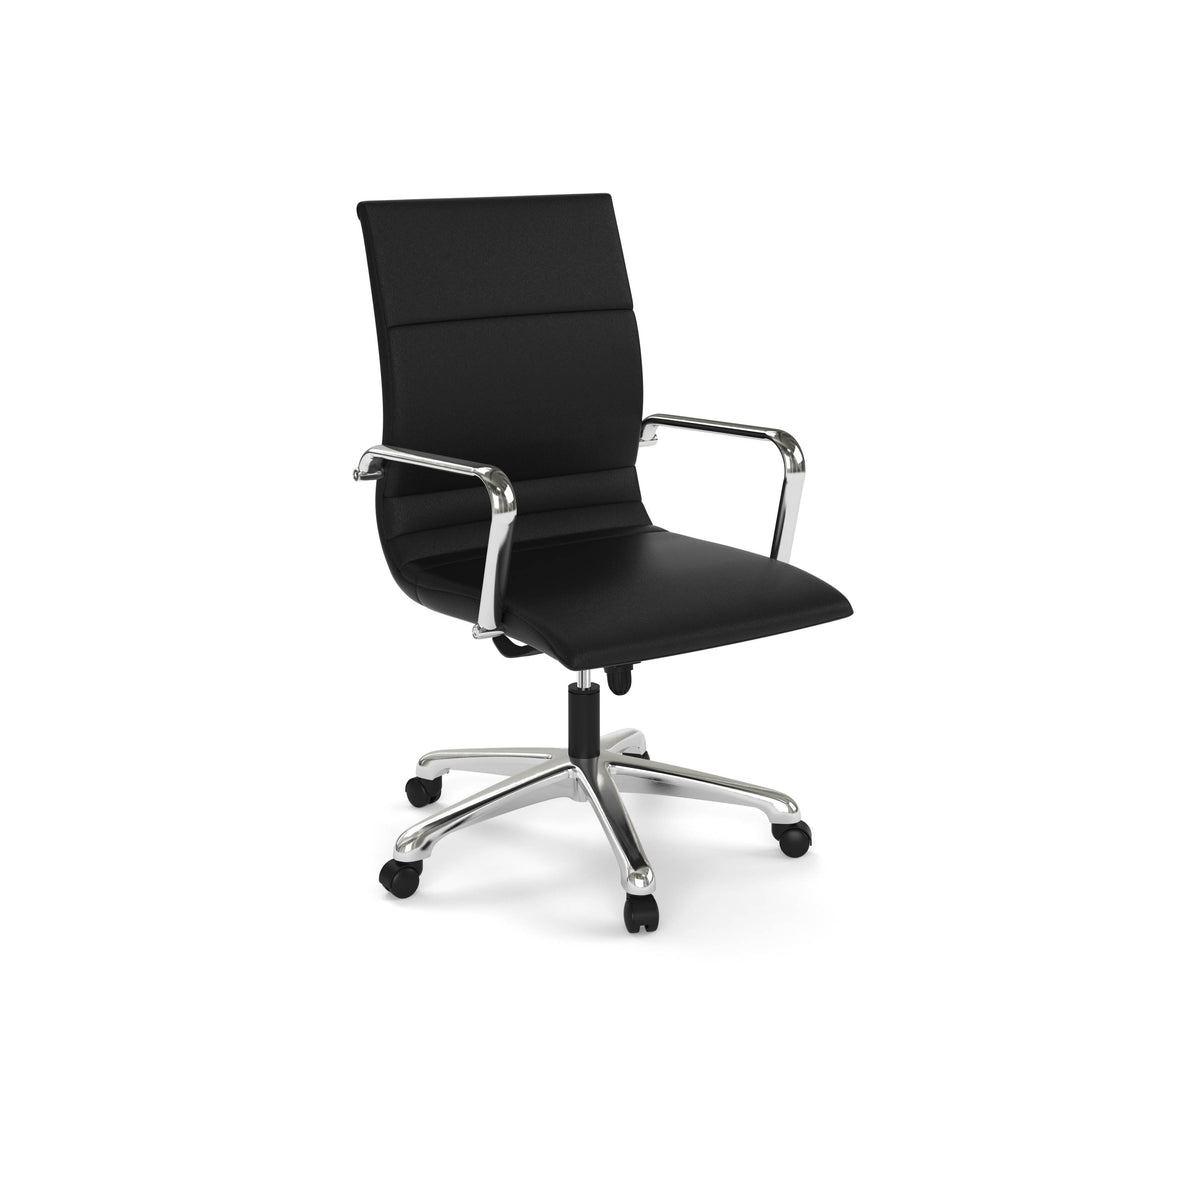 Duckys Office Furniture - Nova III Conference Chair - Duckys Office Furniture